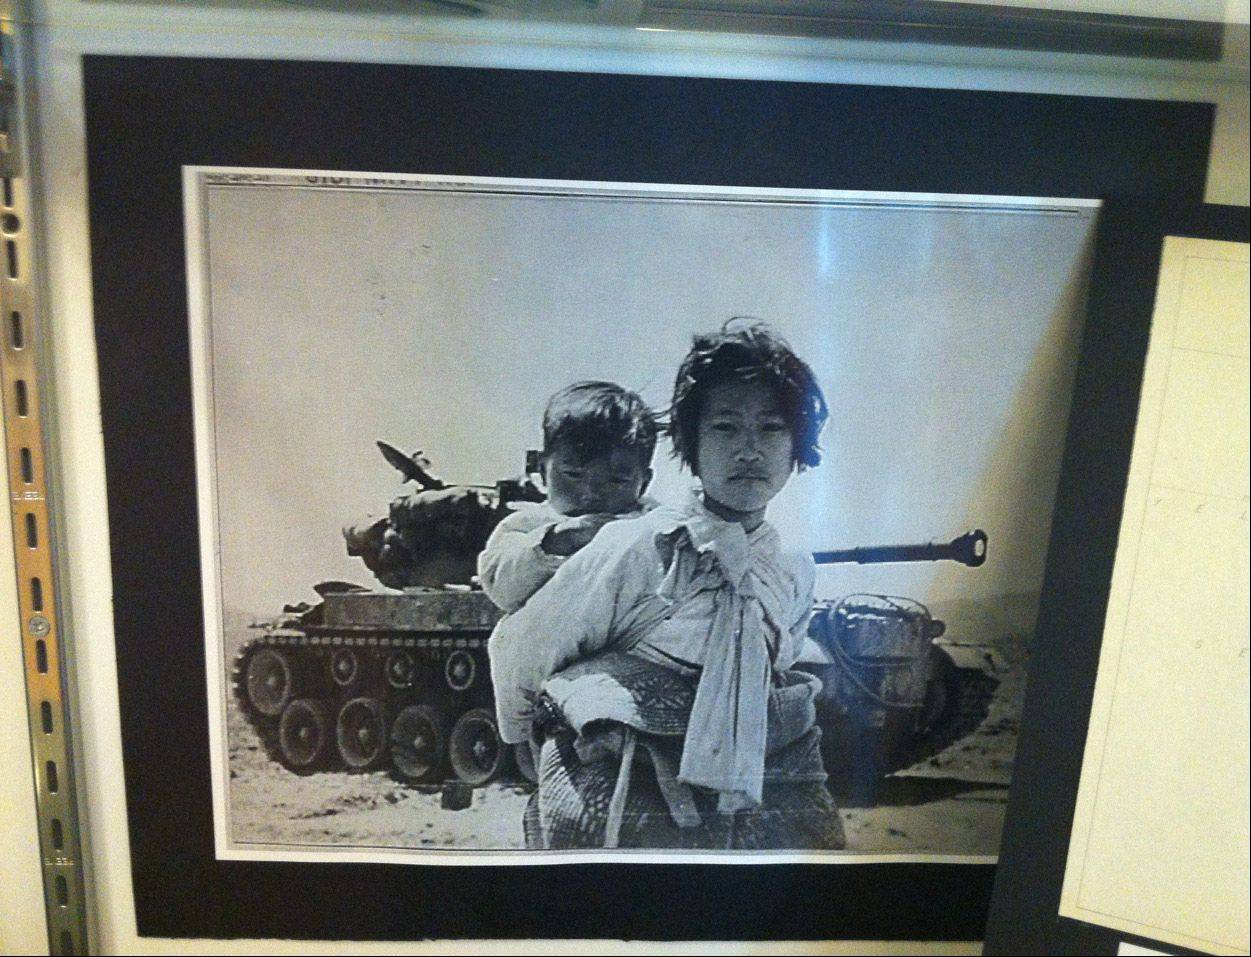 Photos on display at the Korean War exhibit at the Skokie Heritage Museum.